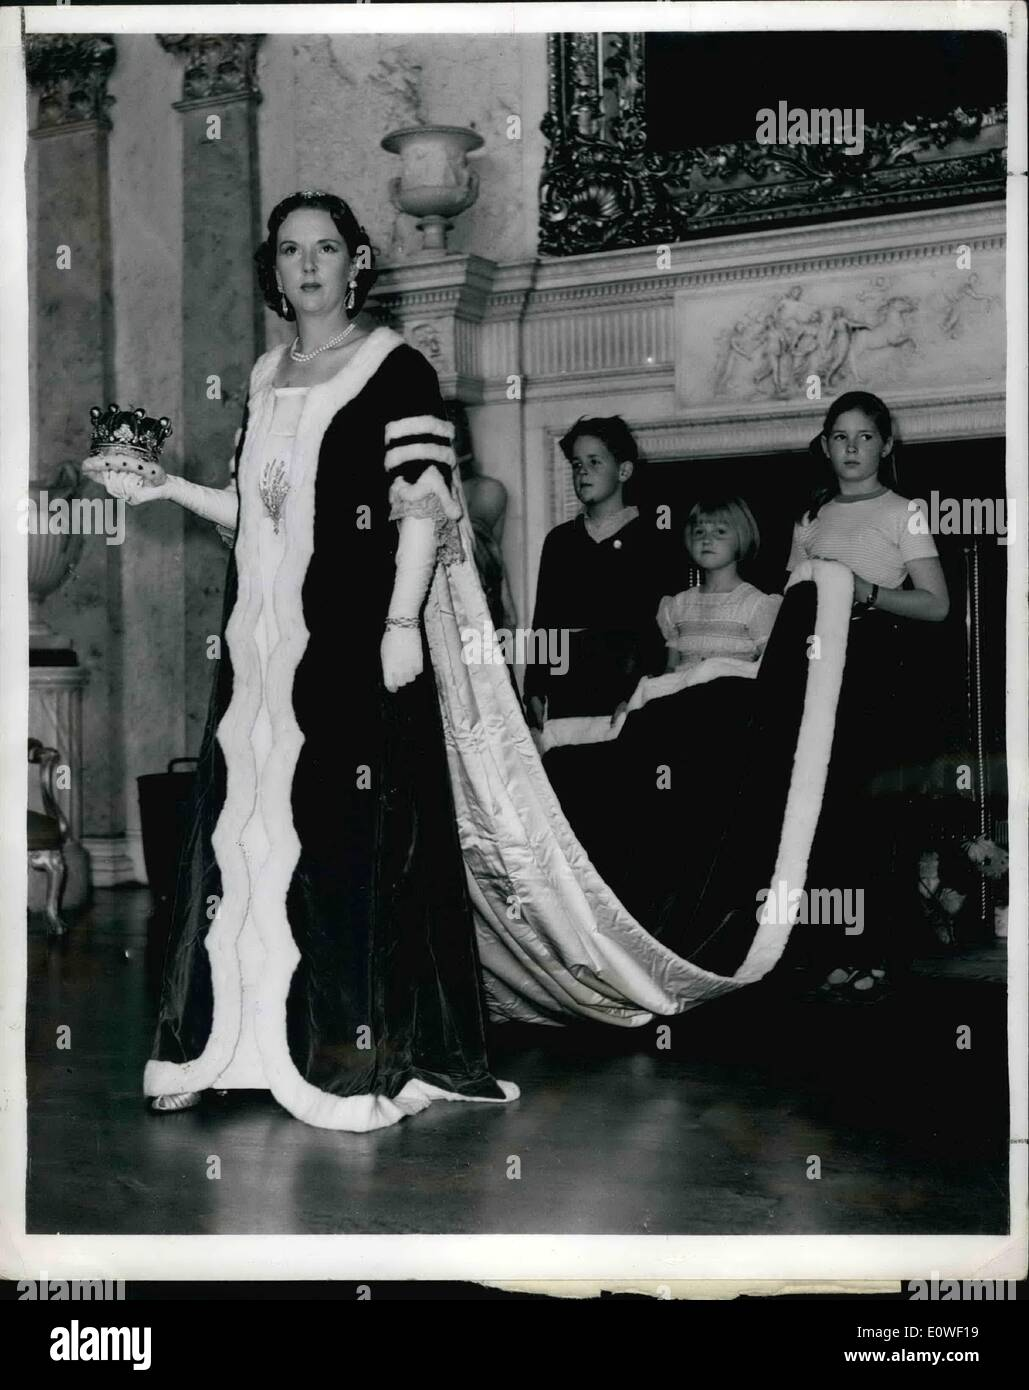 Aug. 08, 1962 - Countess Gets Her Coronation Robes Out Of Storage: The Countess of Dranley, has got her Coronation robes out of - Stock Image